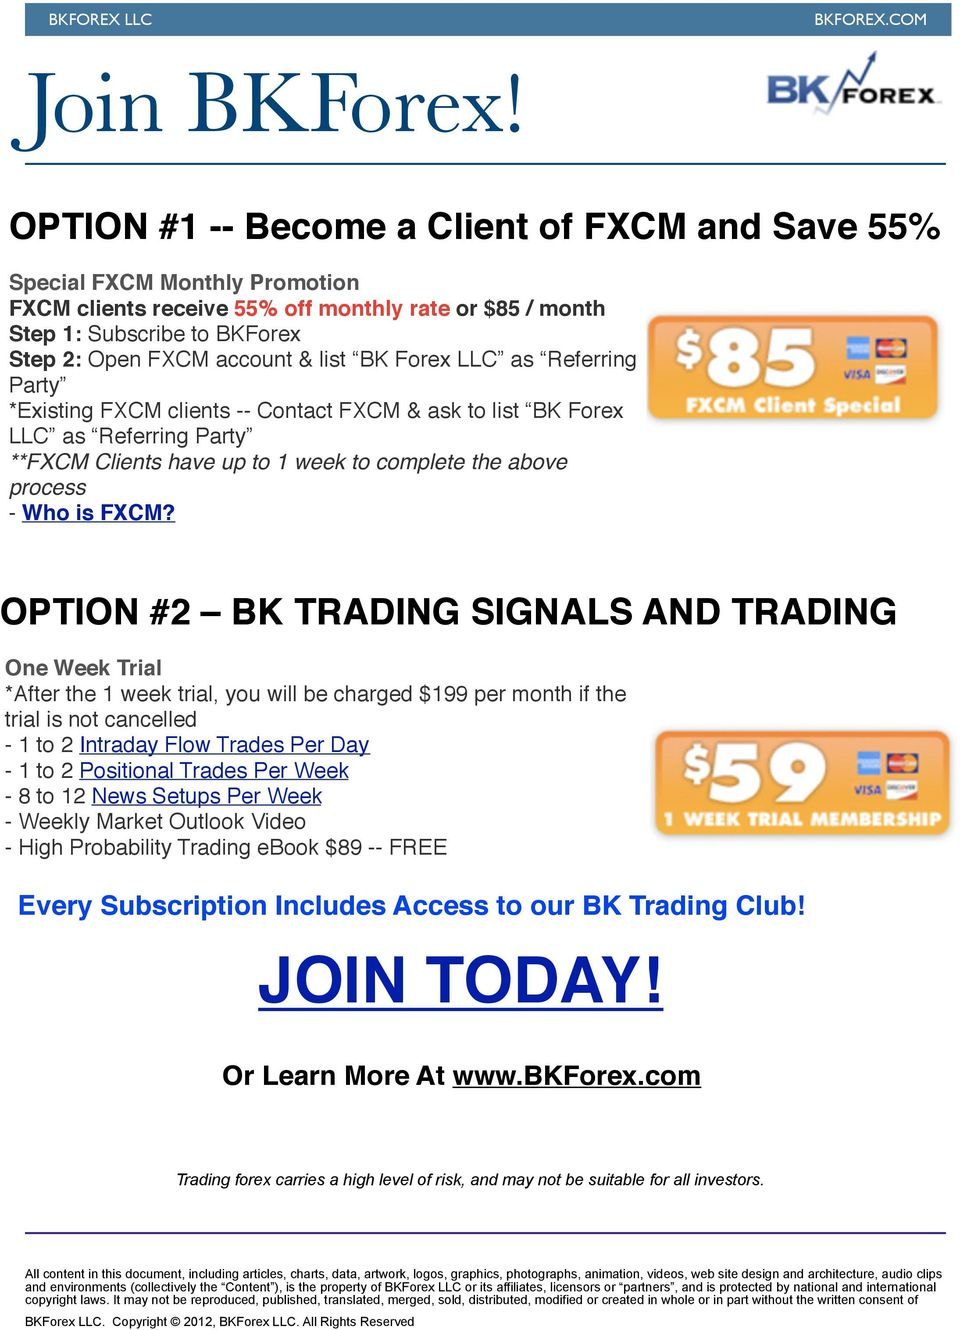 BK Forex LLC as Referring Party *Existing FXCM clients -- Contact FXCM & ask to list BK Forex LLC as Referring Party **FXCM Clients have up to 1 week to complete the above process - Who is FXCM?